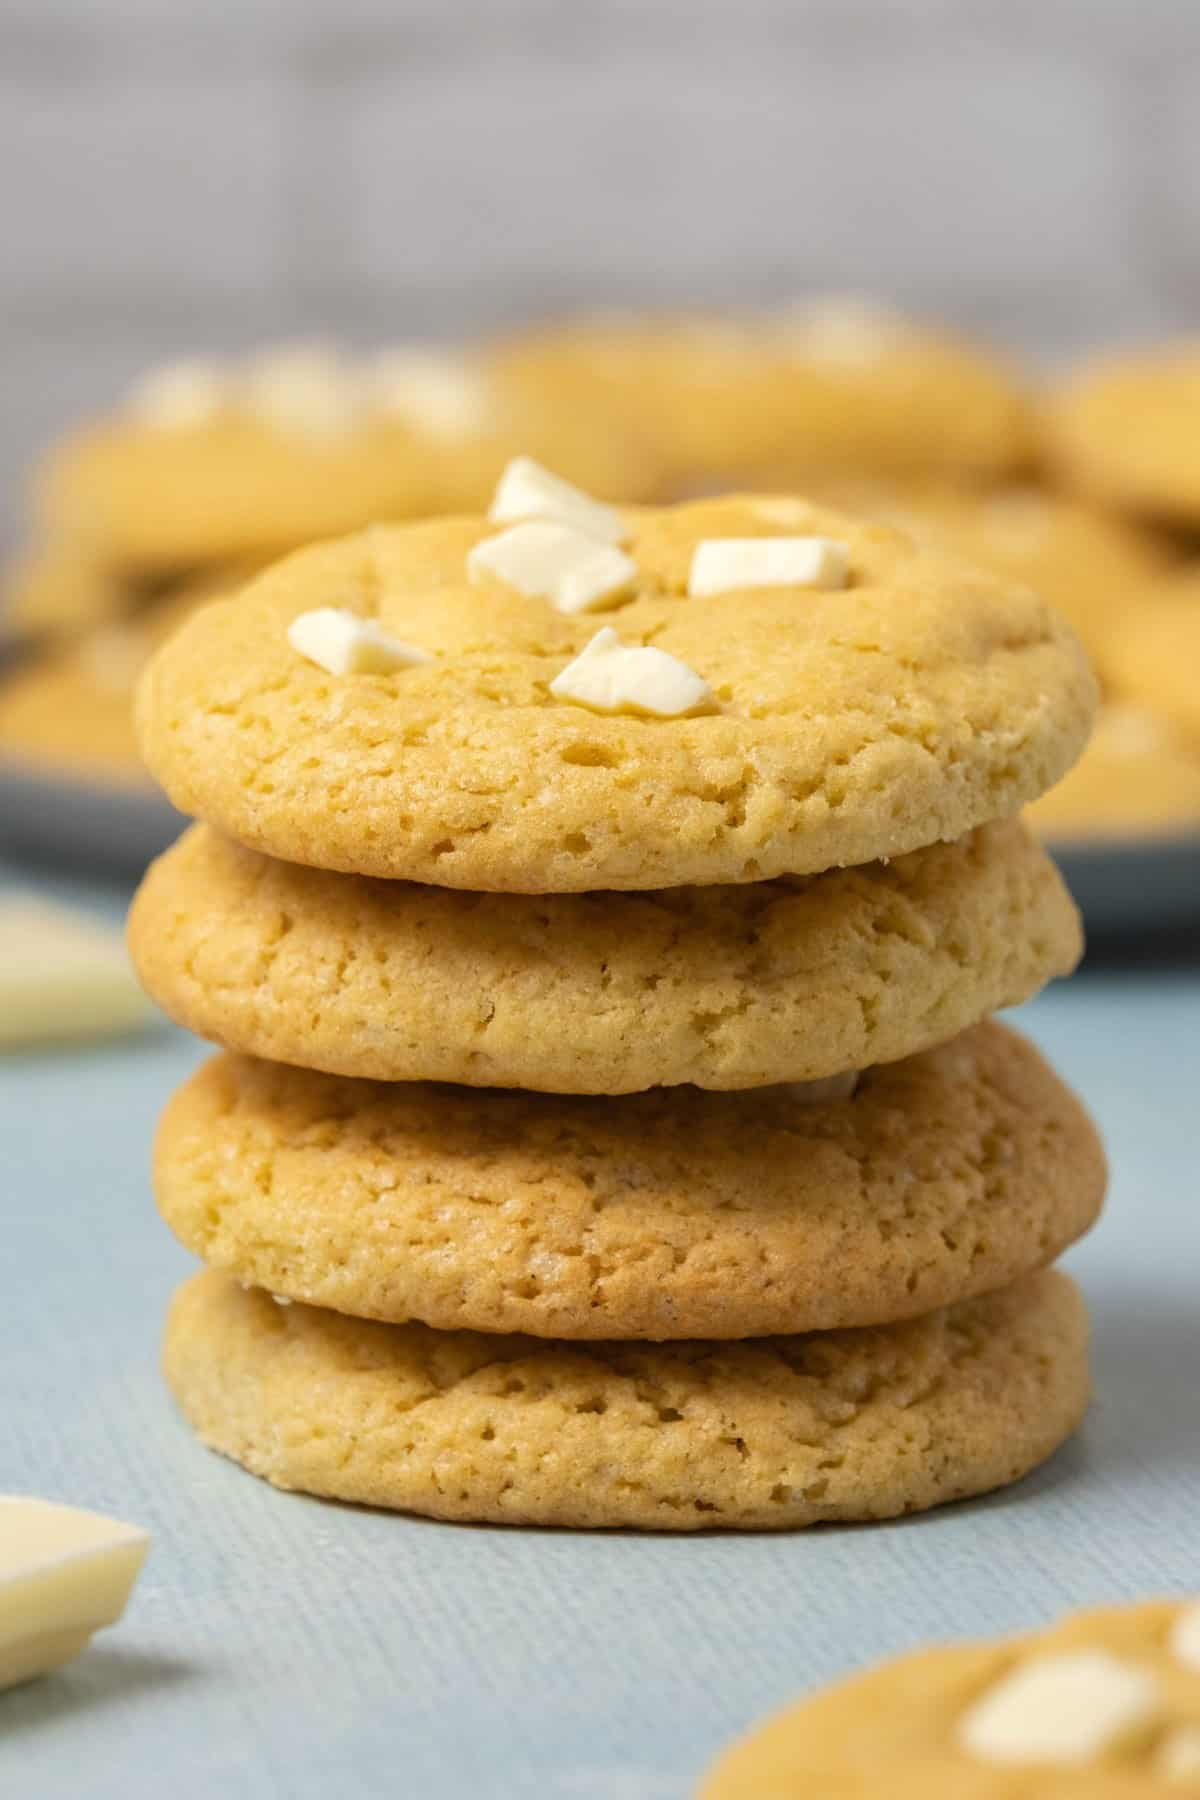 A stack of four white chocolate chip cookies.